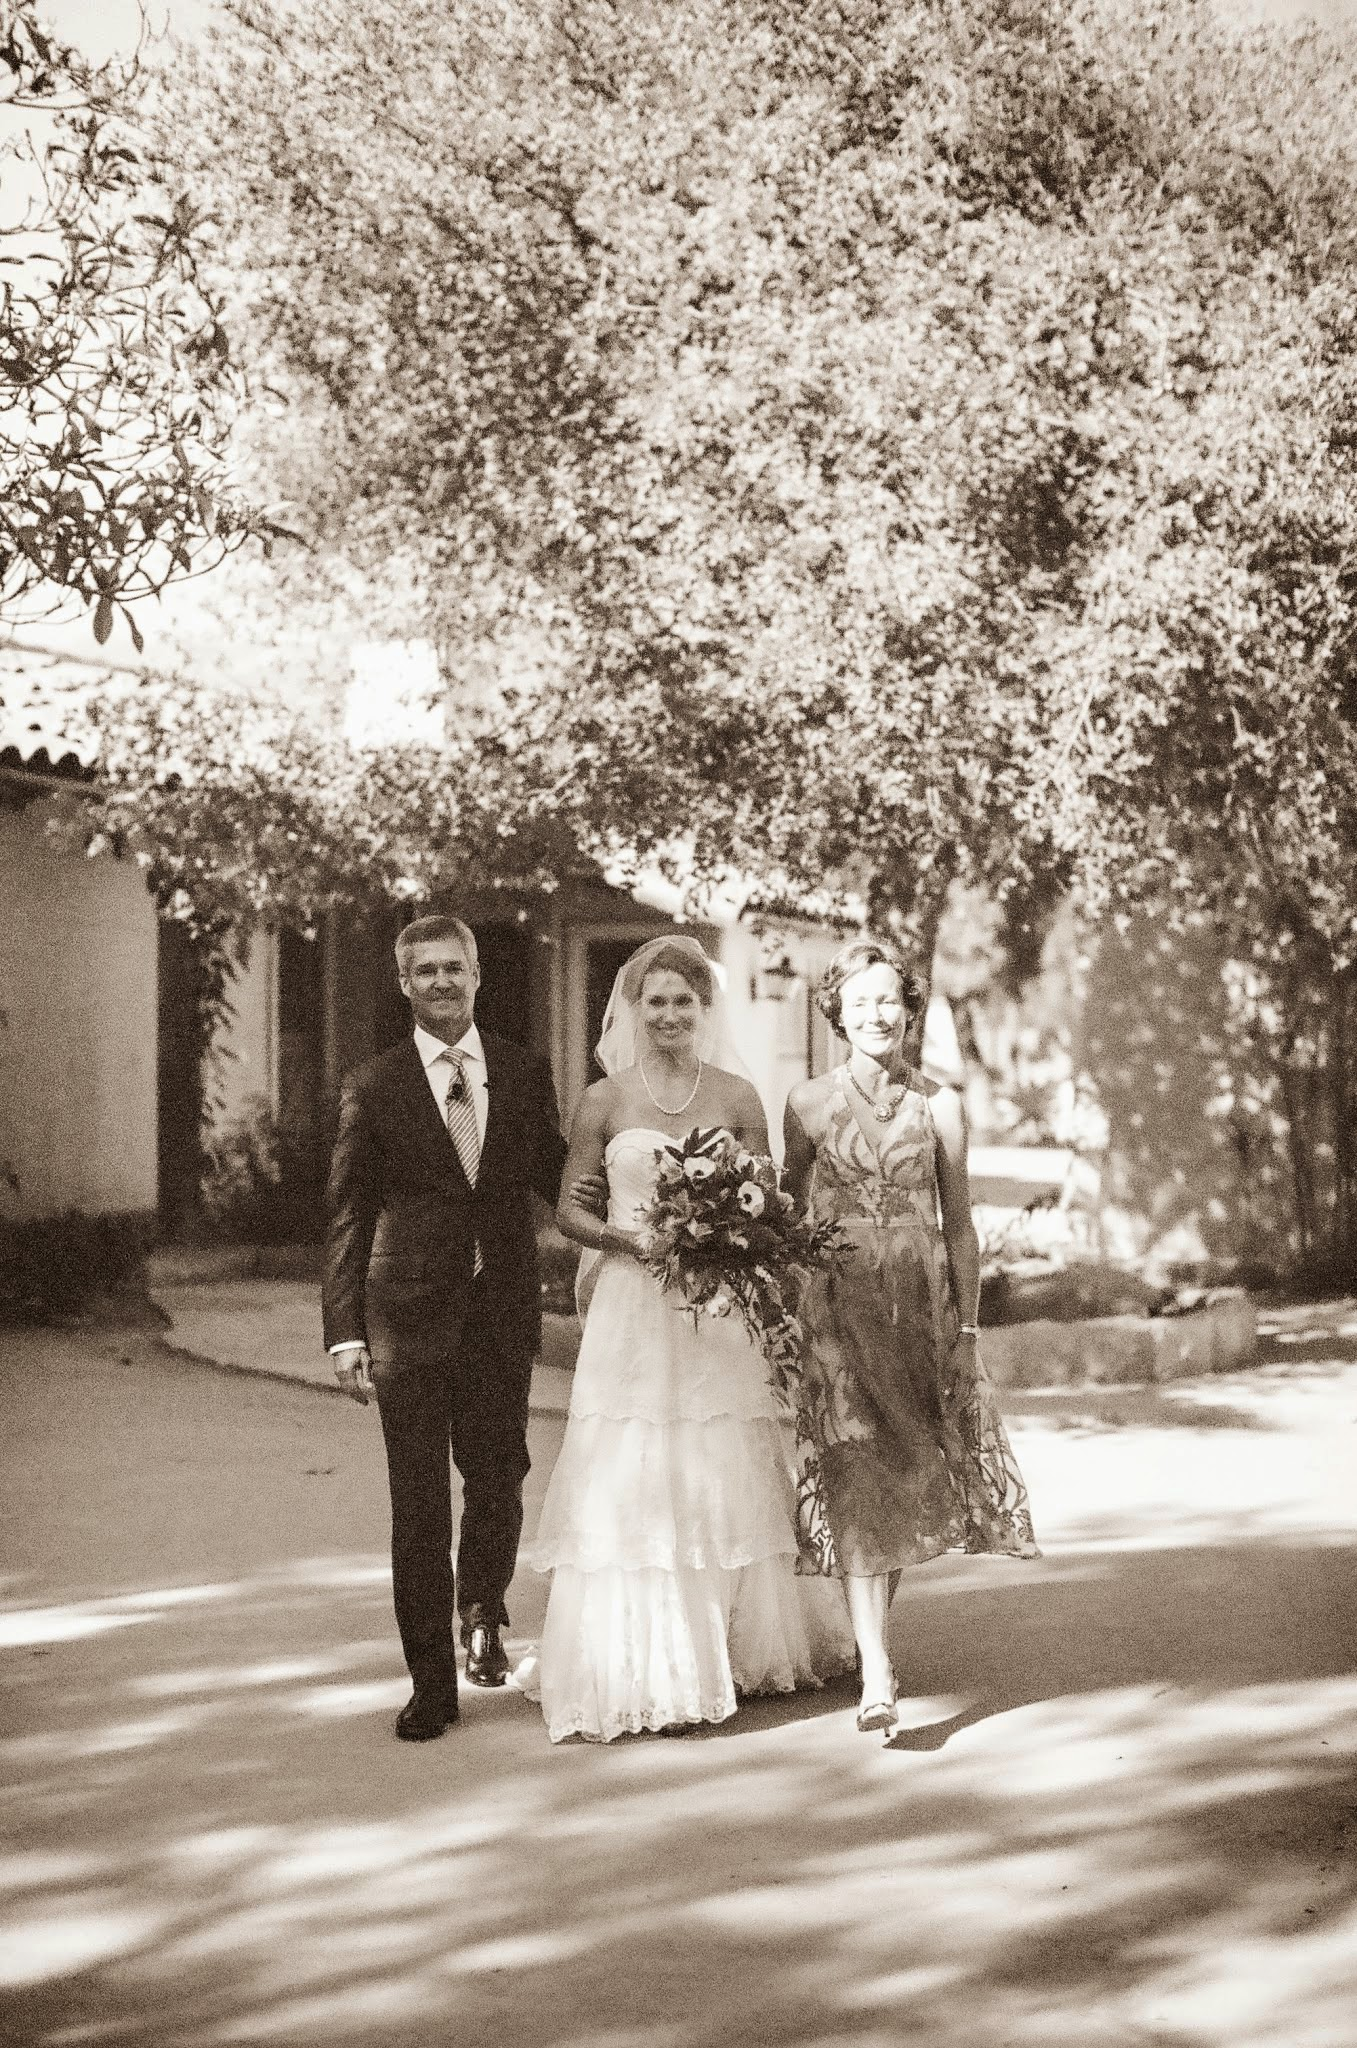 www.felicievents.com | Felici Events | Historical Museum Wedding | Eclectic Orange Wedding | Bride Walking Down Aisle